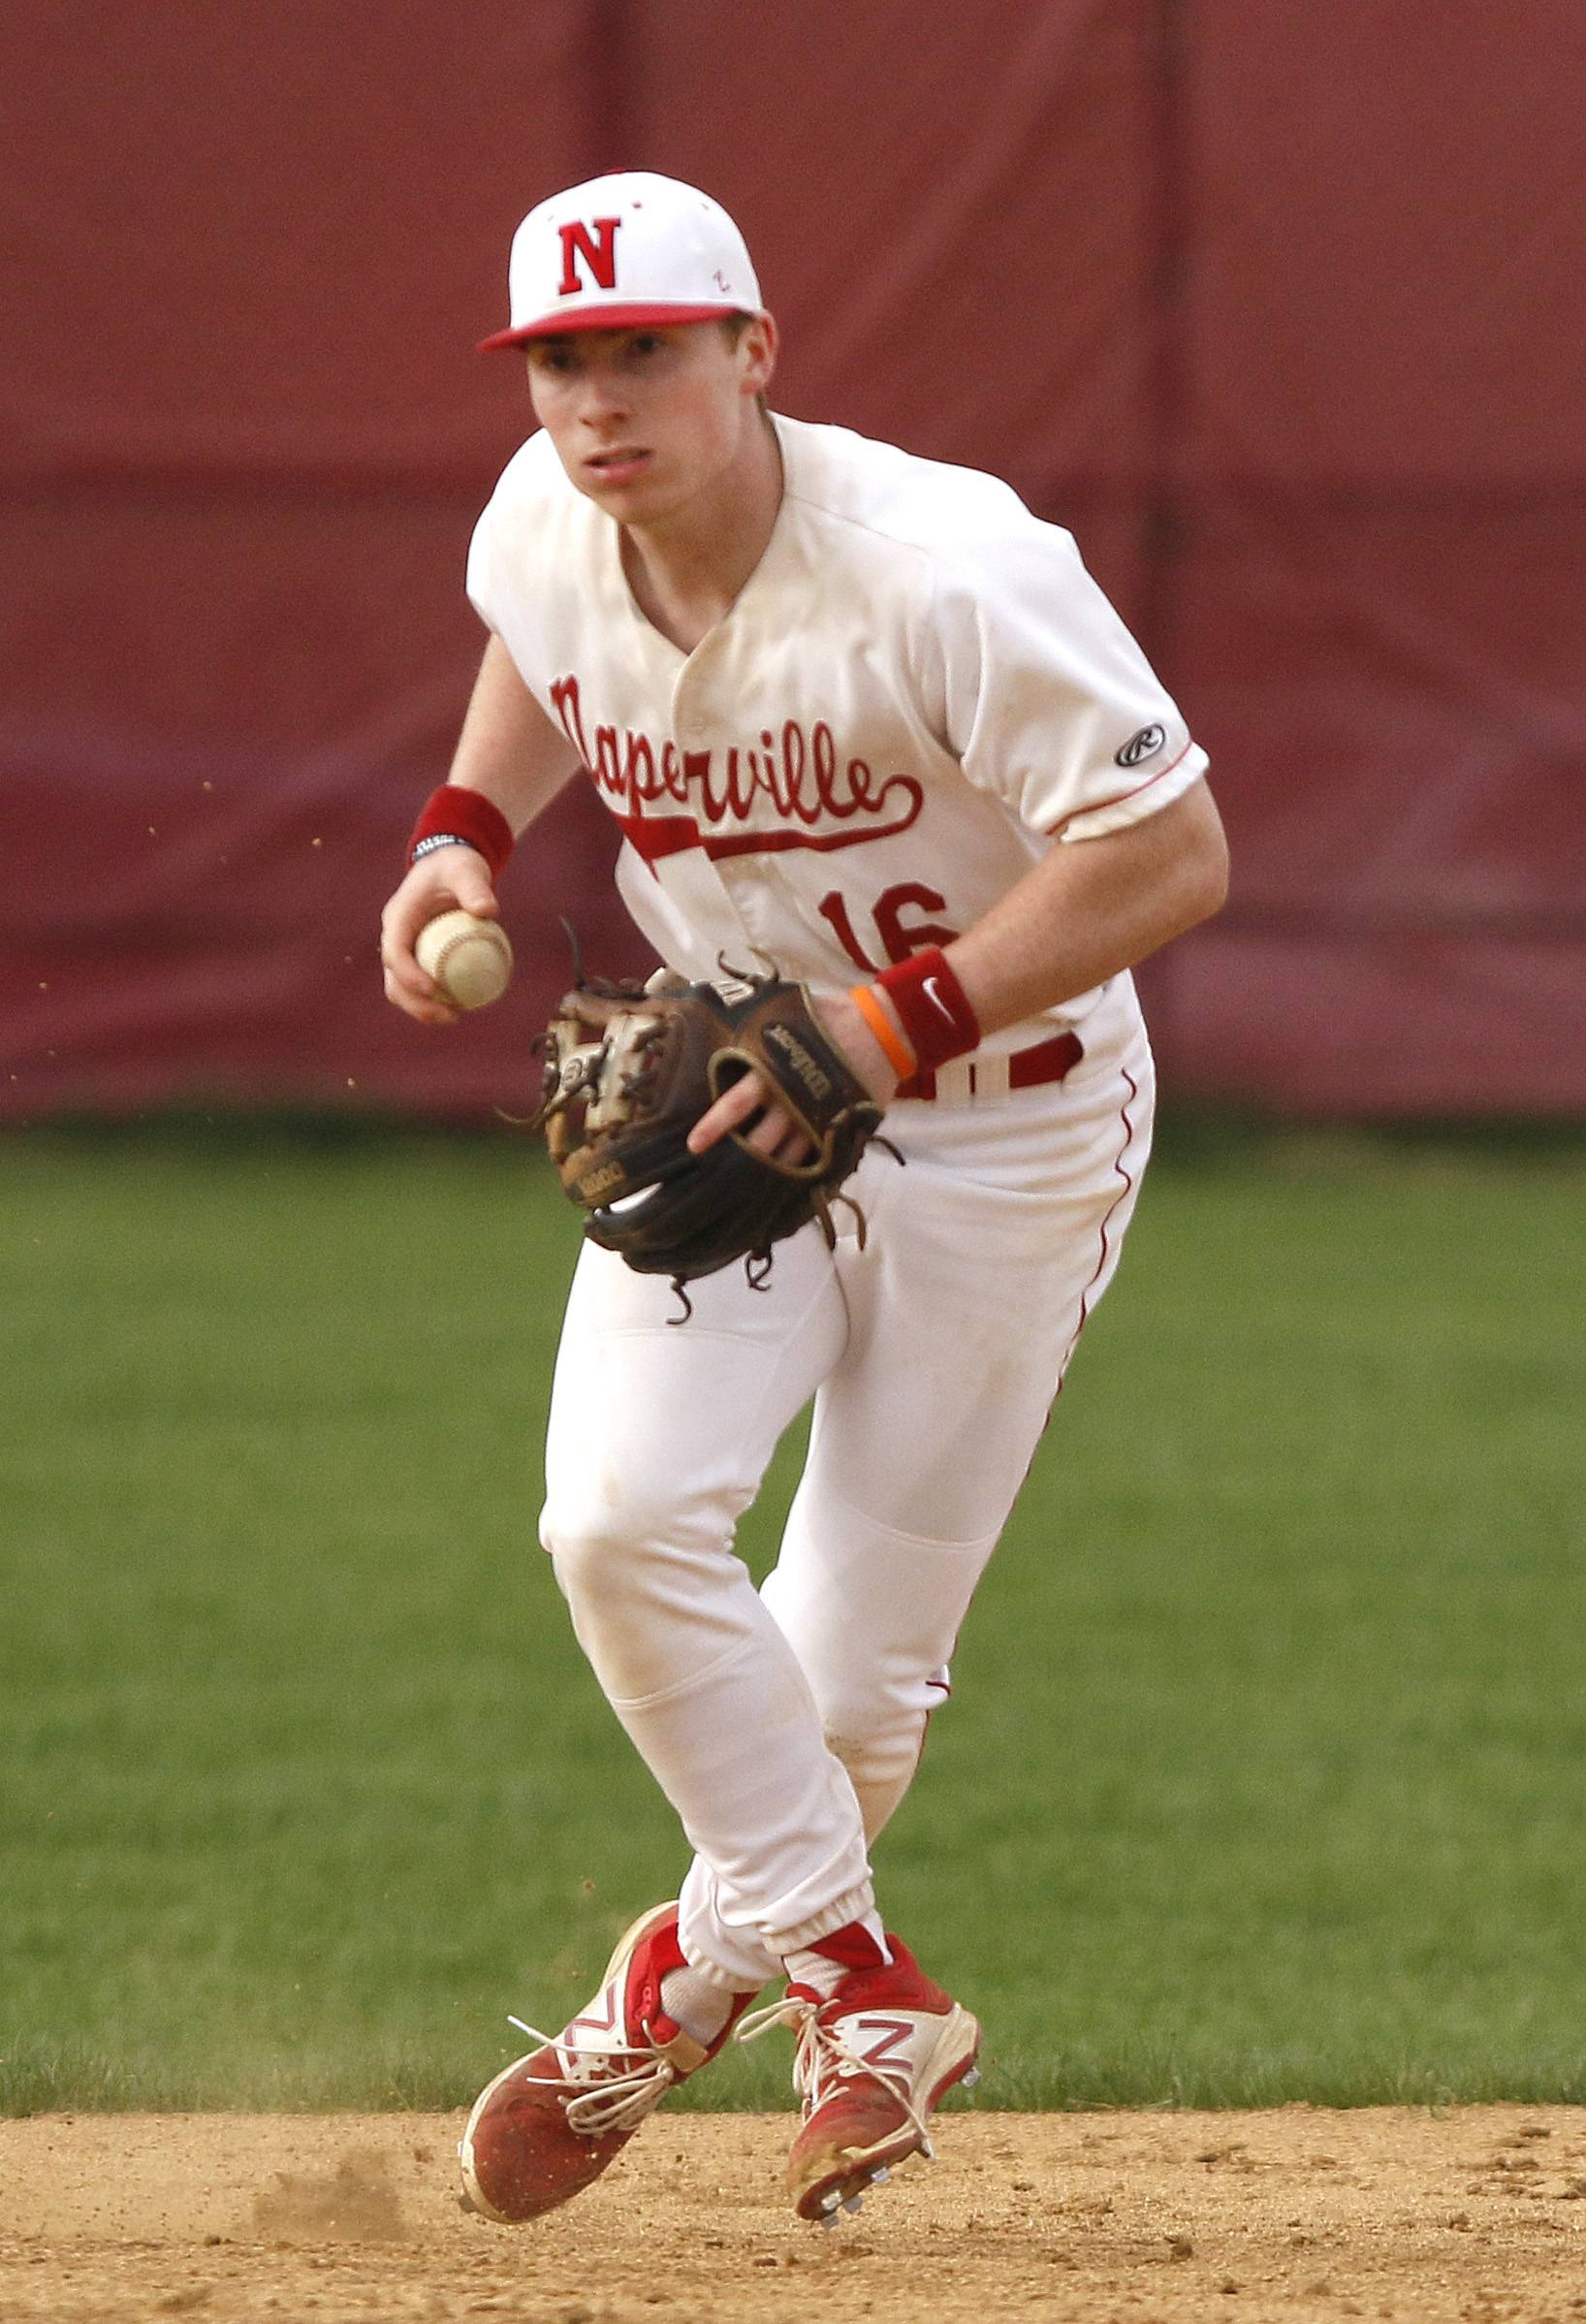 Naperville Central's Connor Gurnik fields a ground ball during a 5-3 win over Waubonsie Valley in Naperville.